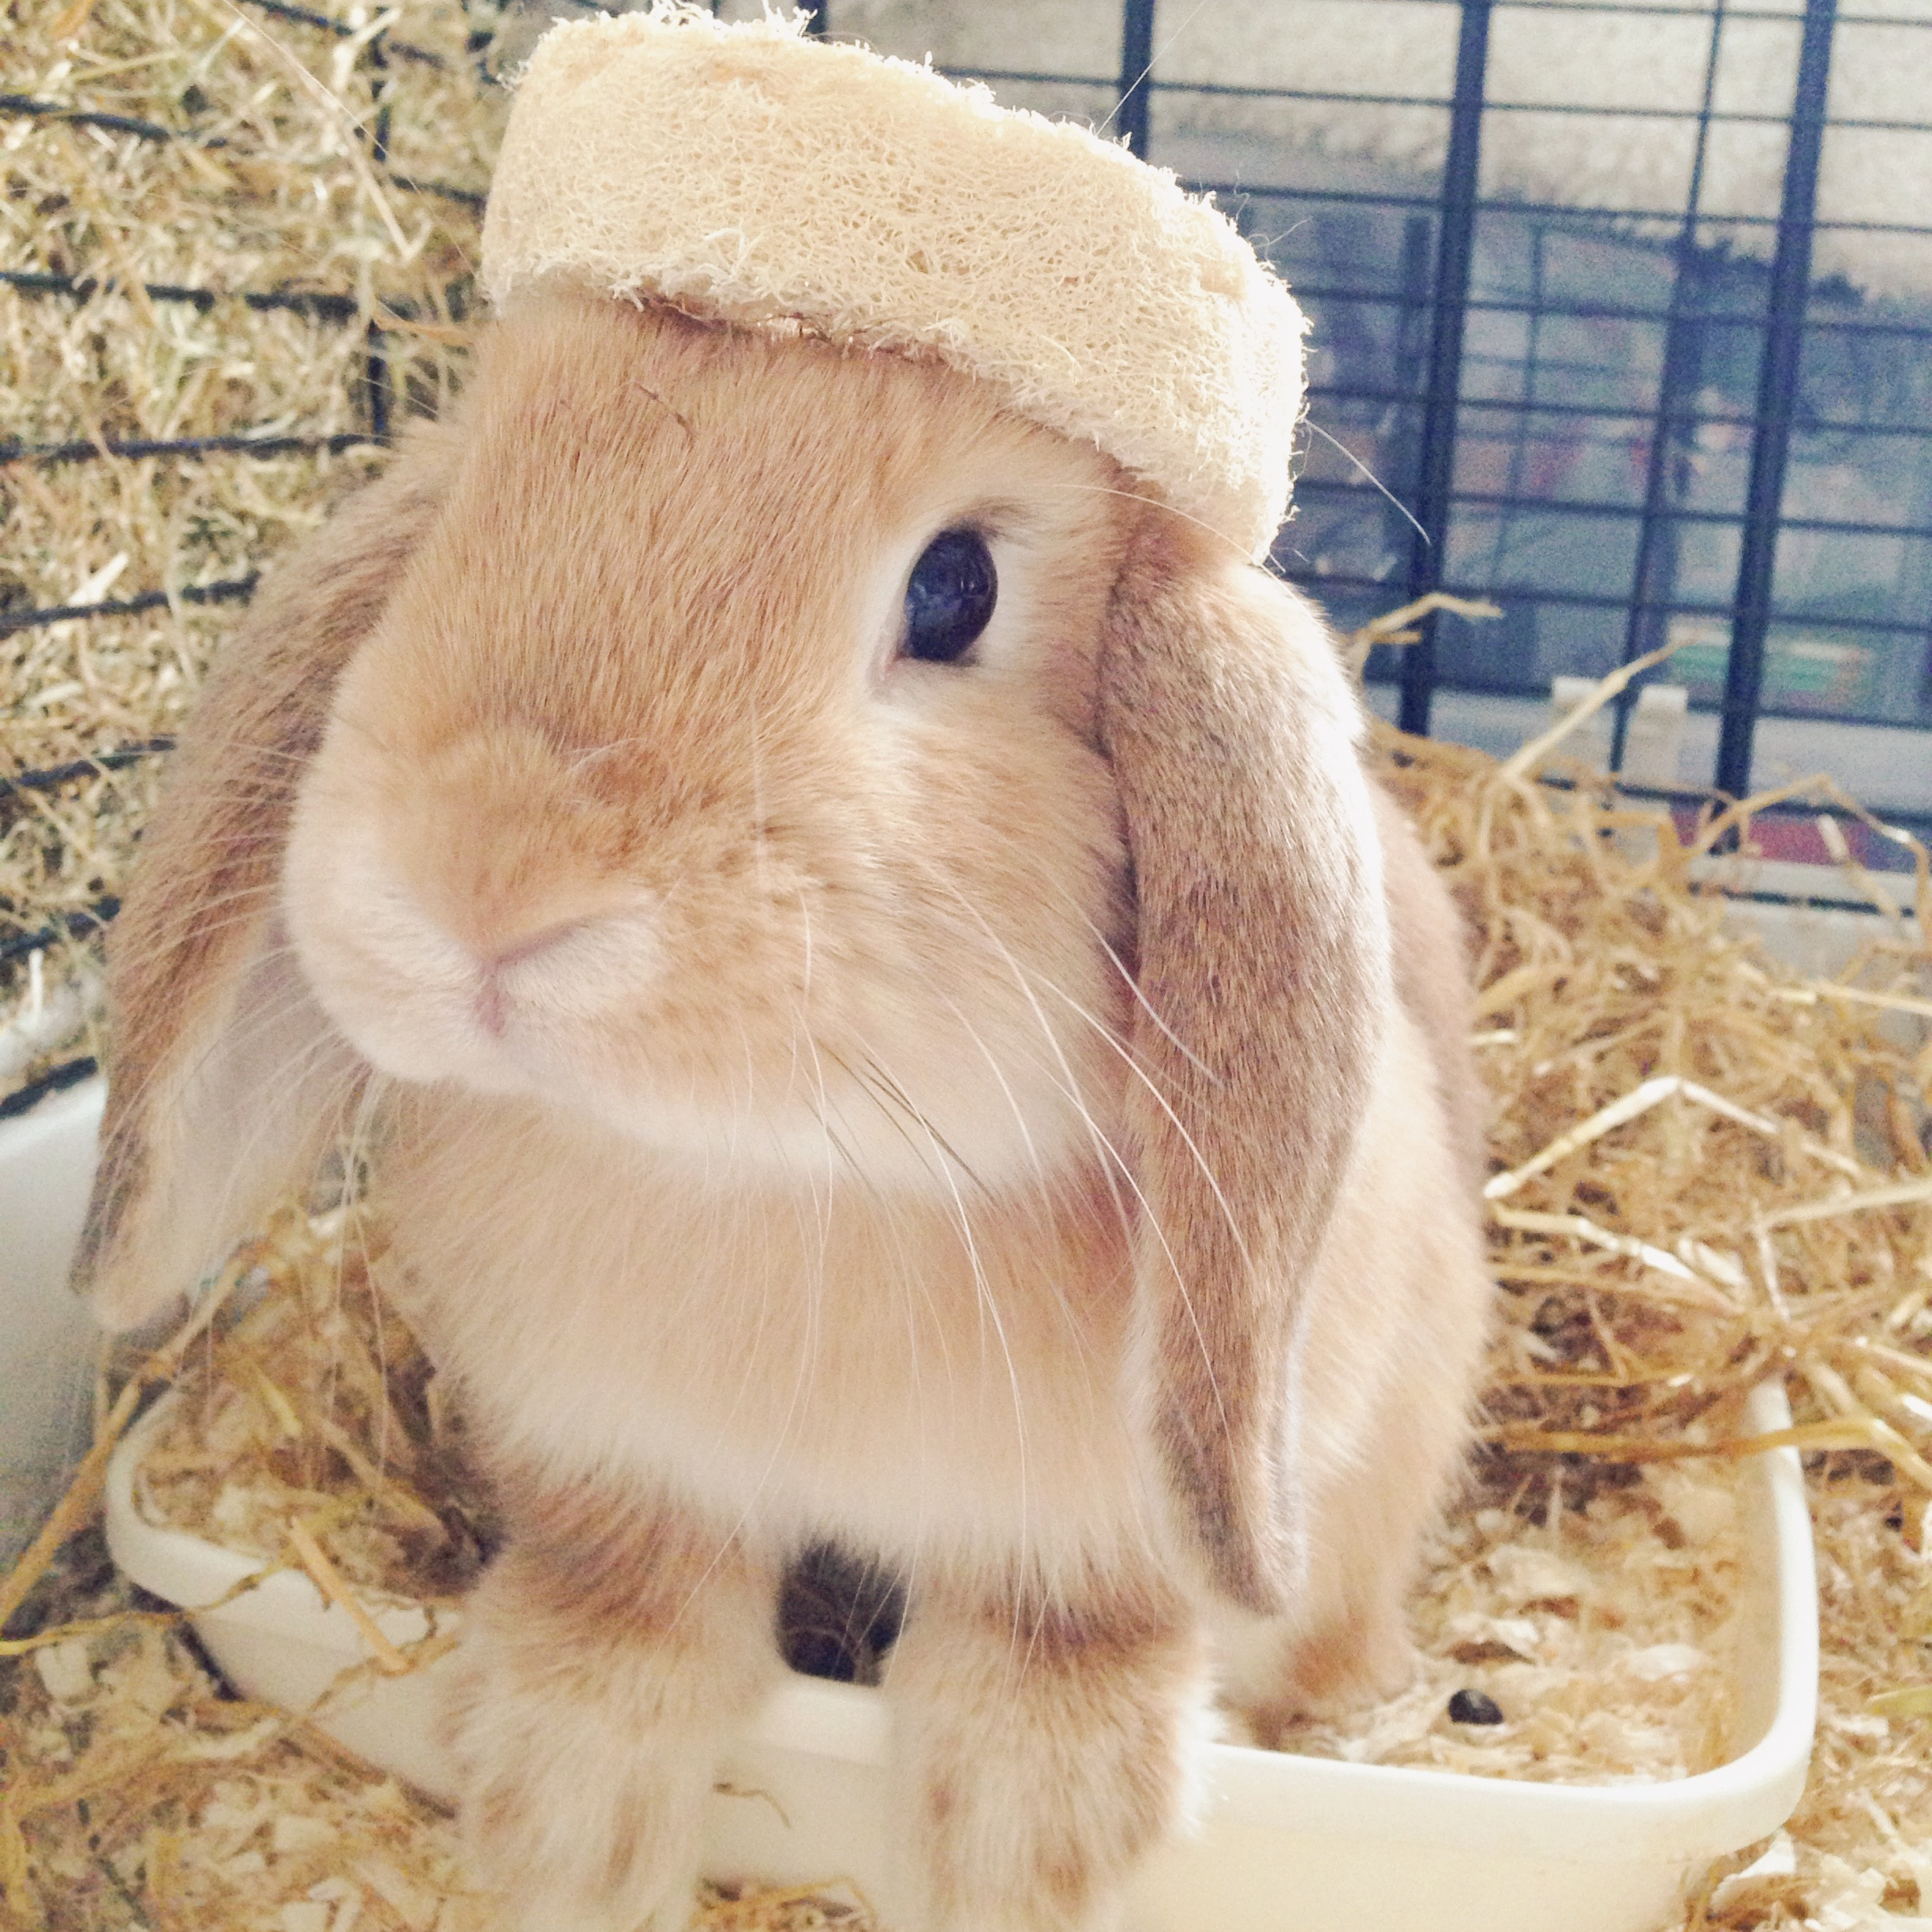 Bunny Wears His Toy as a Crown